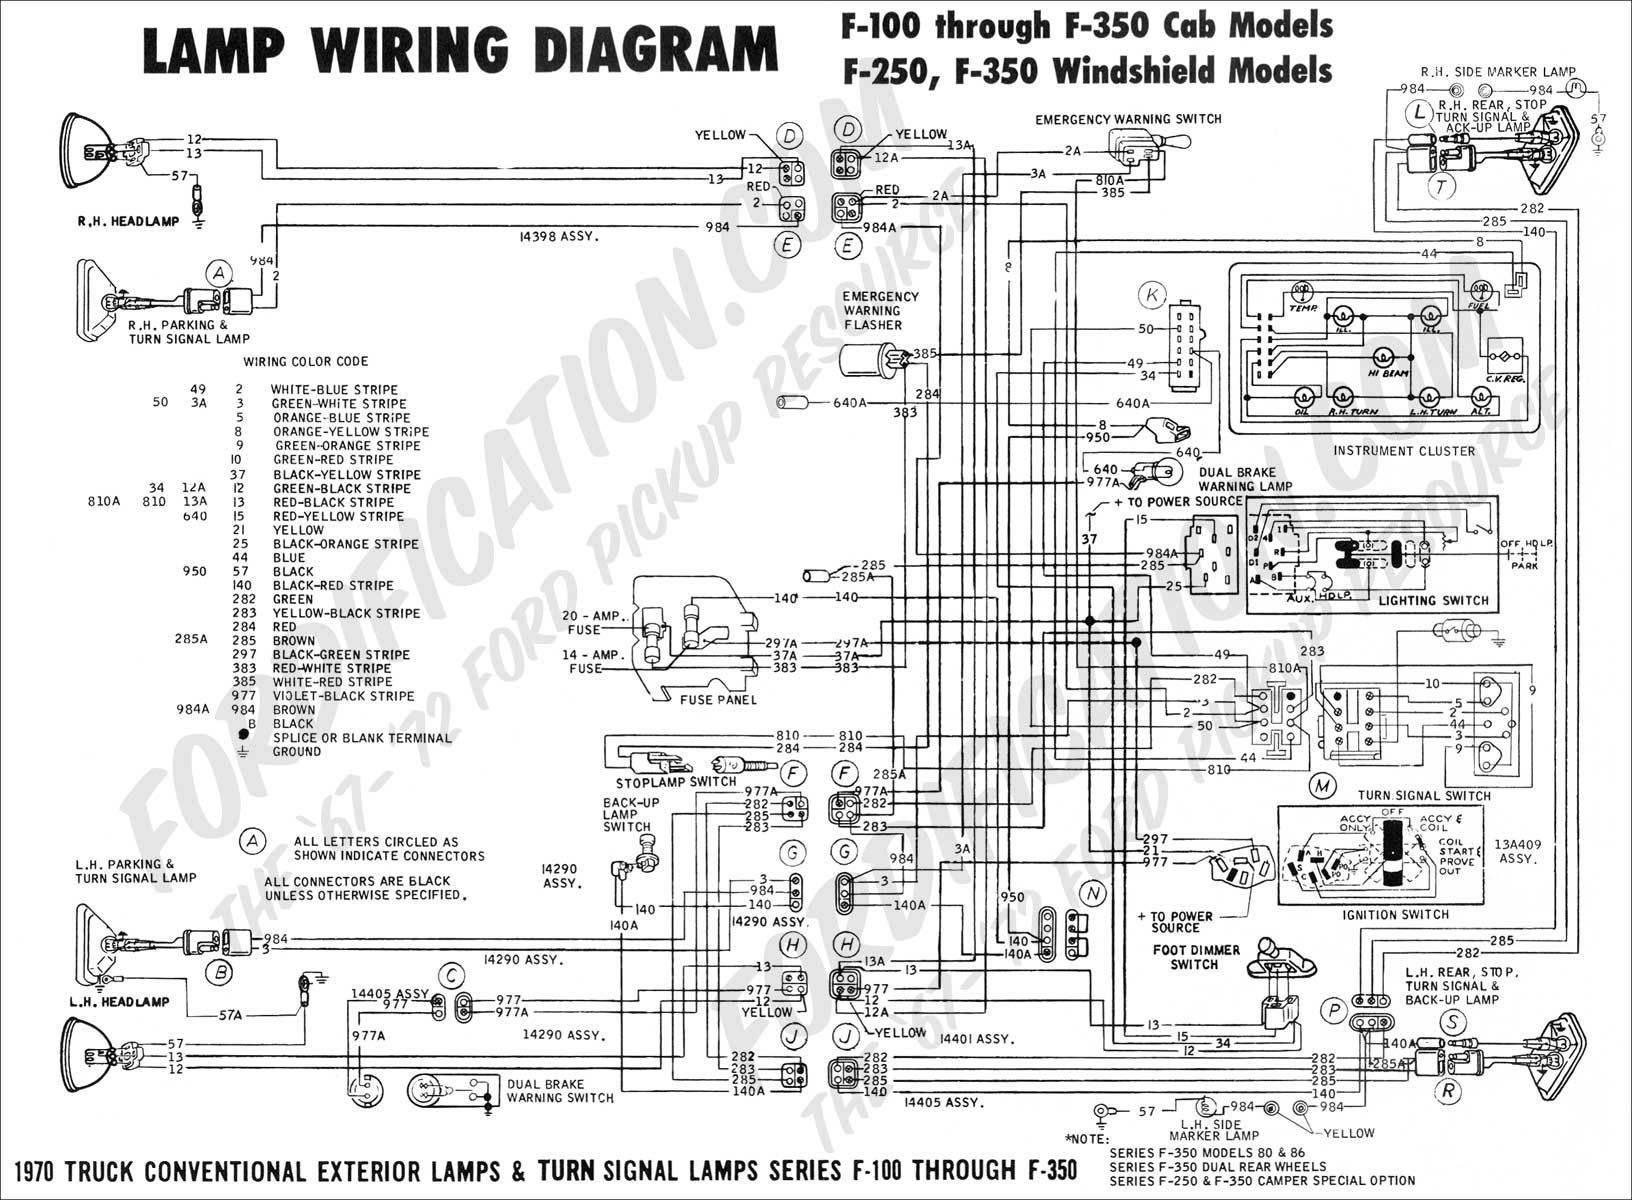 lamp wiring diagram f100 with emergency warning switch and